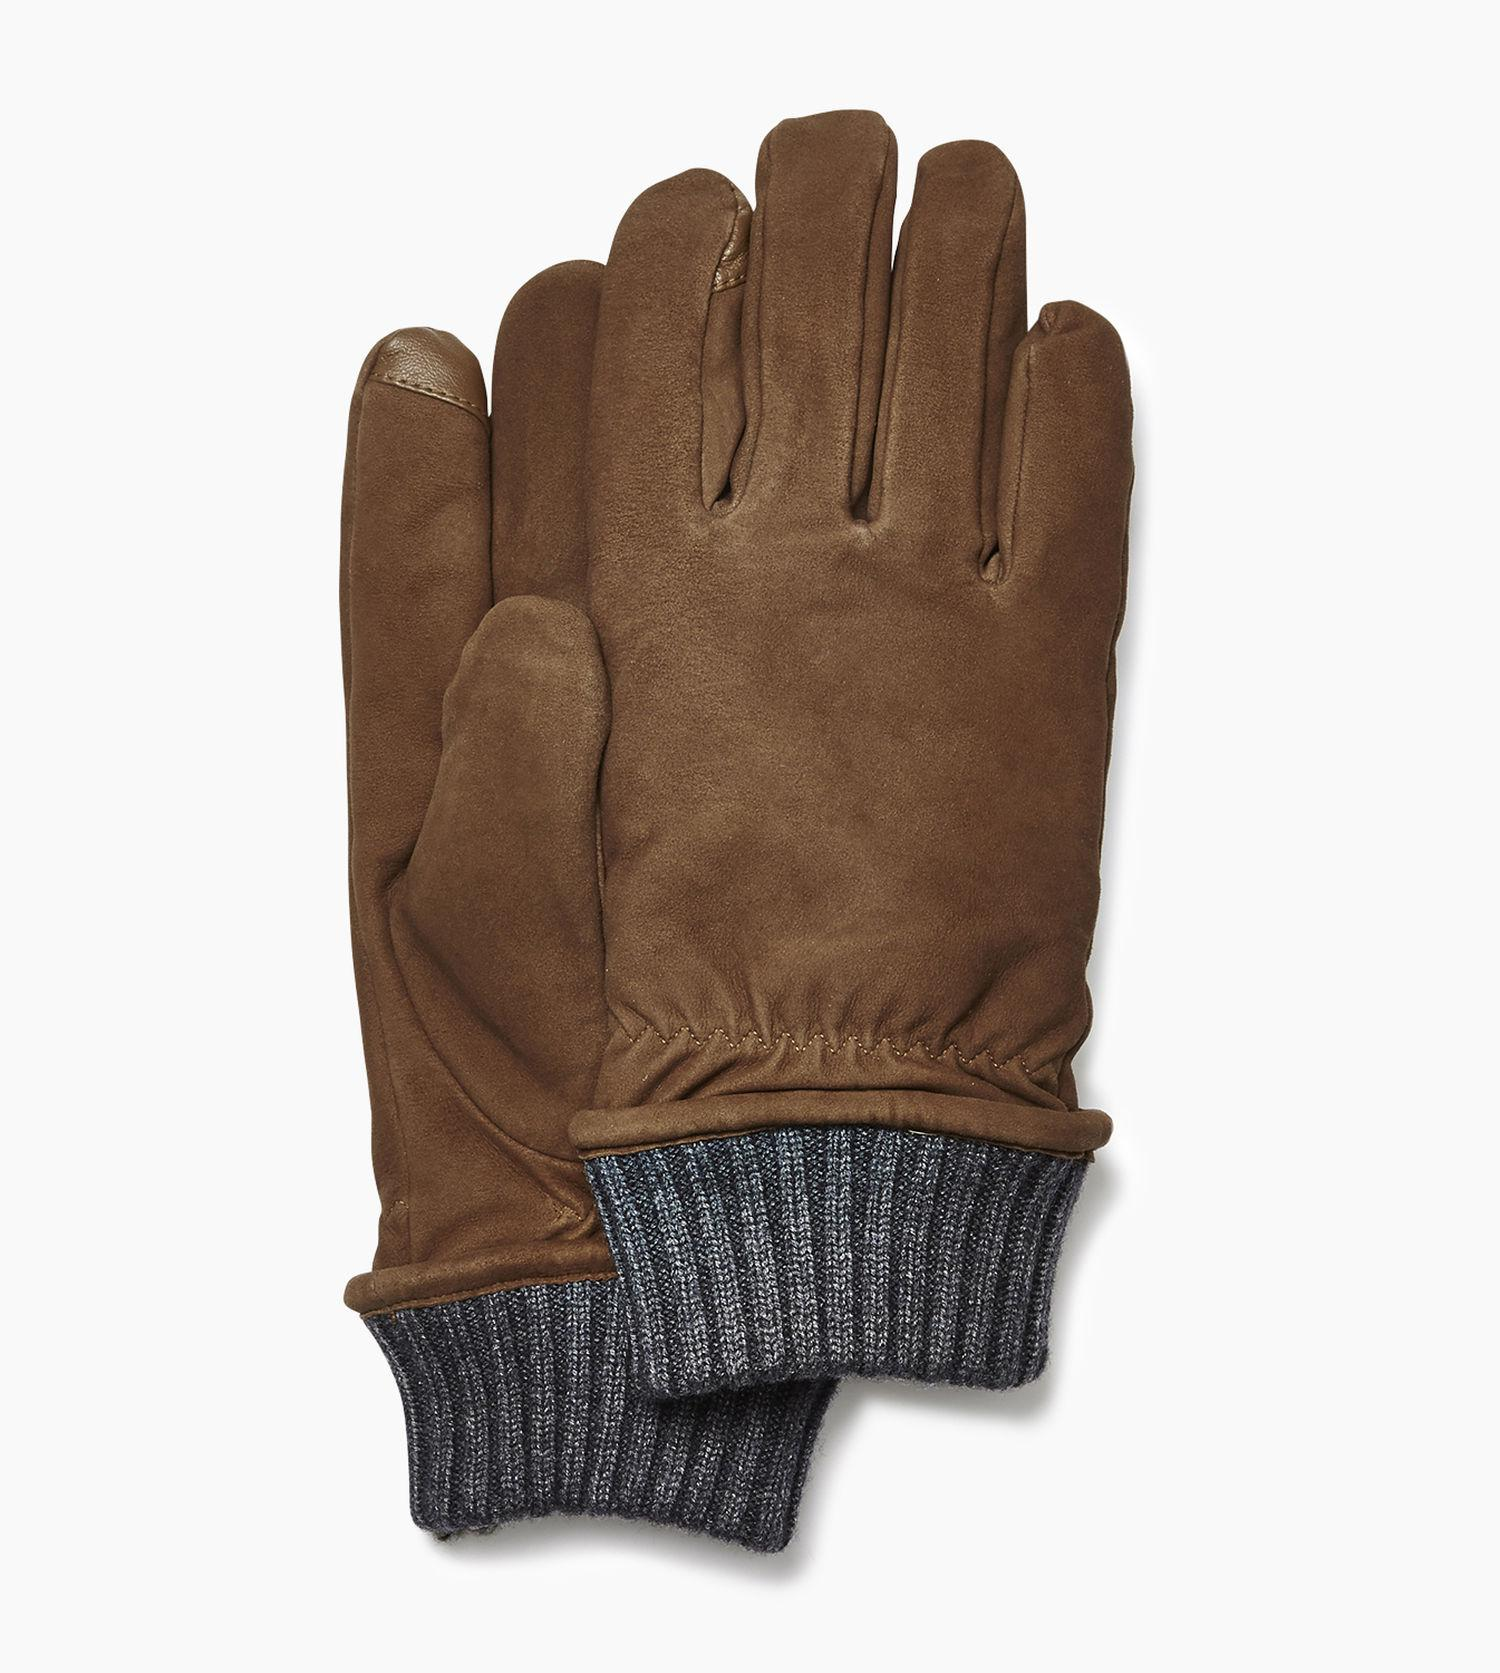 ab72199dd6bf9 UGG Men's Suede Glove With Knit Cuff in Brown for Men - Lyst